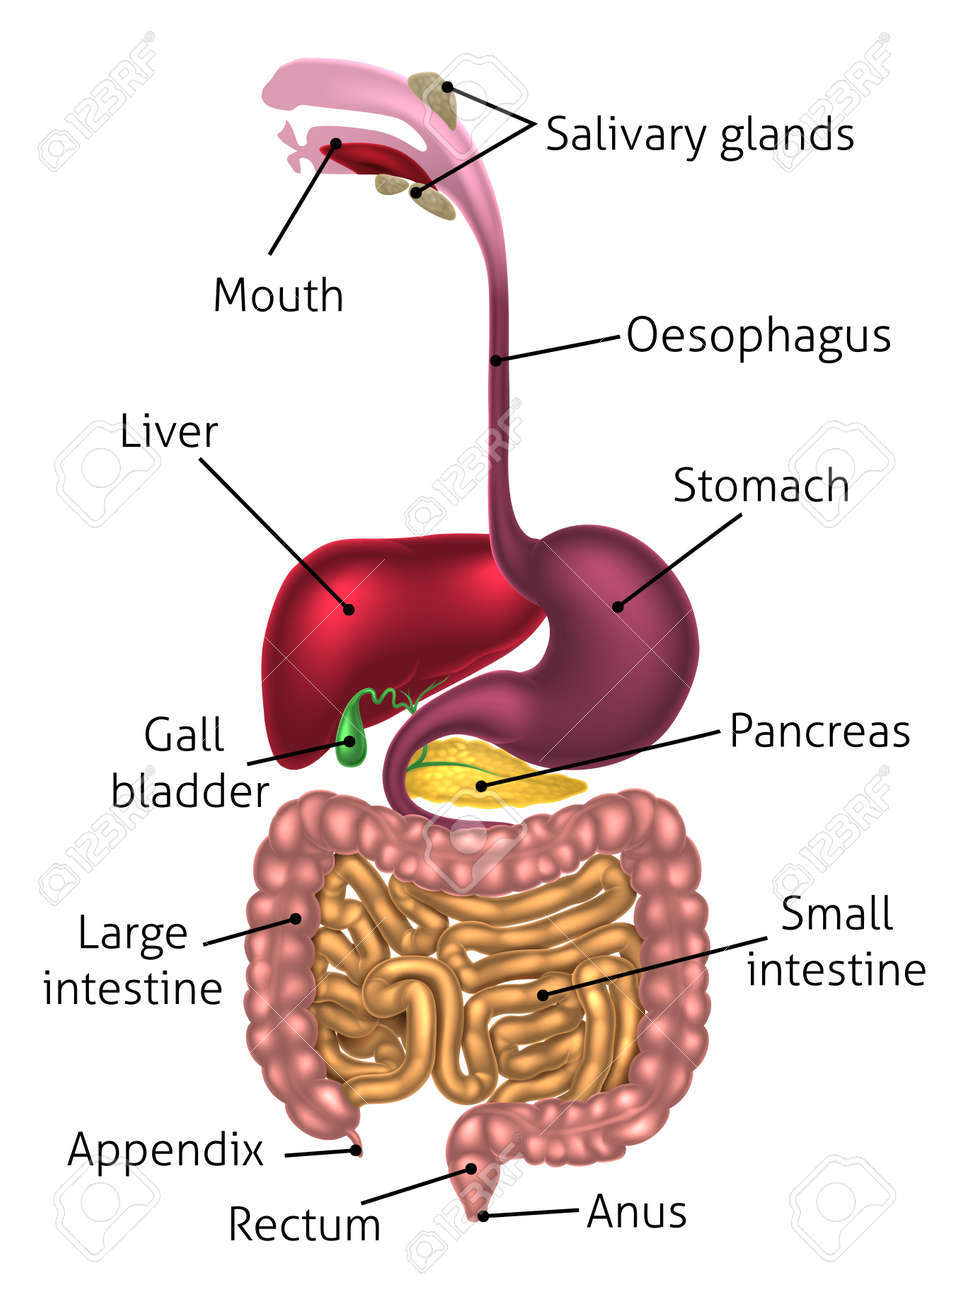 Human digestive system, digestive tract or alimentary canal including